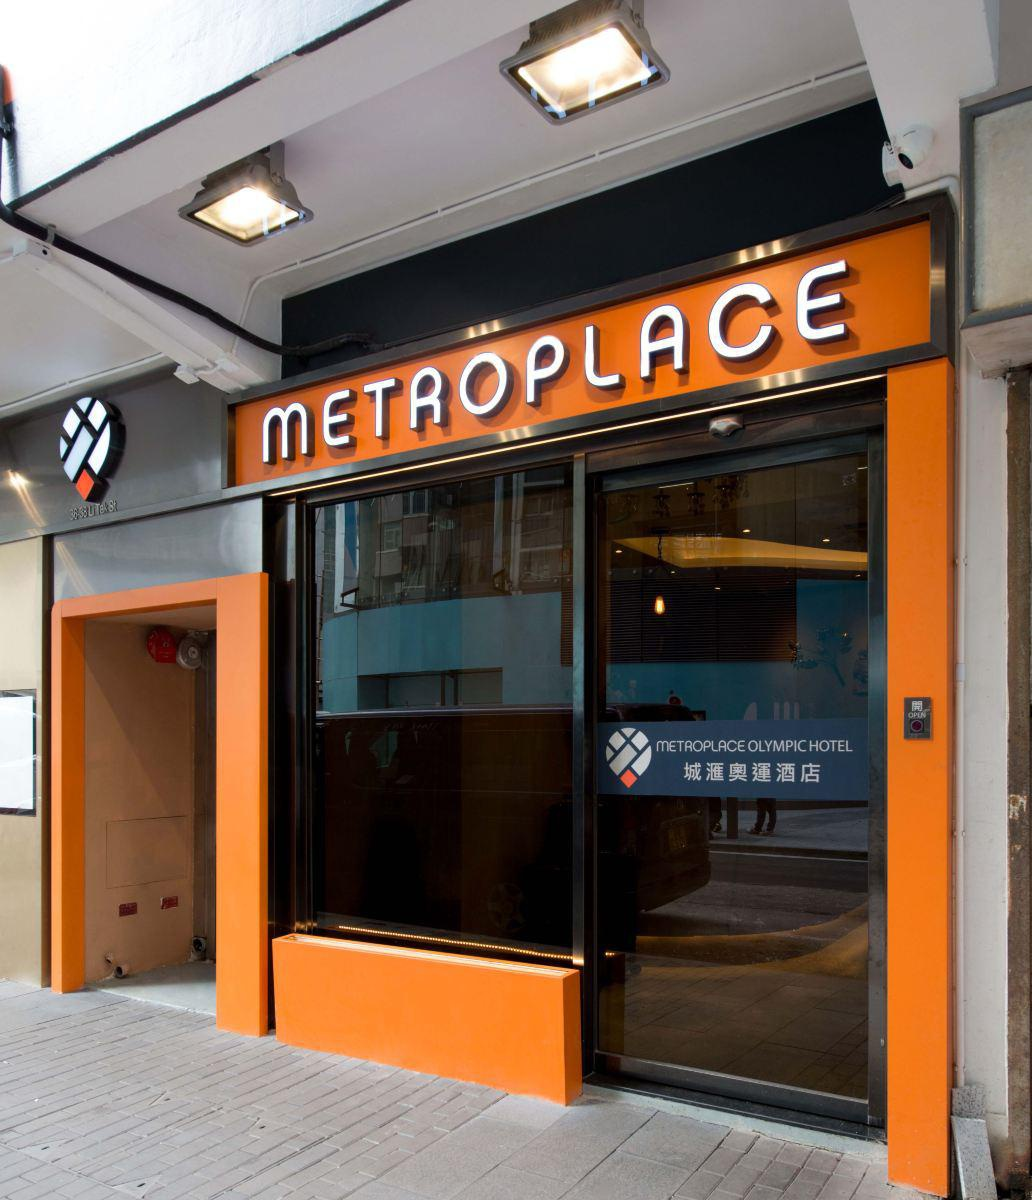 Metroplace Olympic Hotel